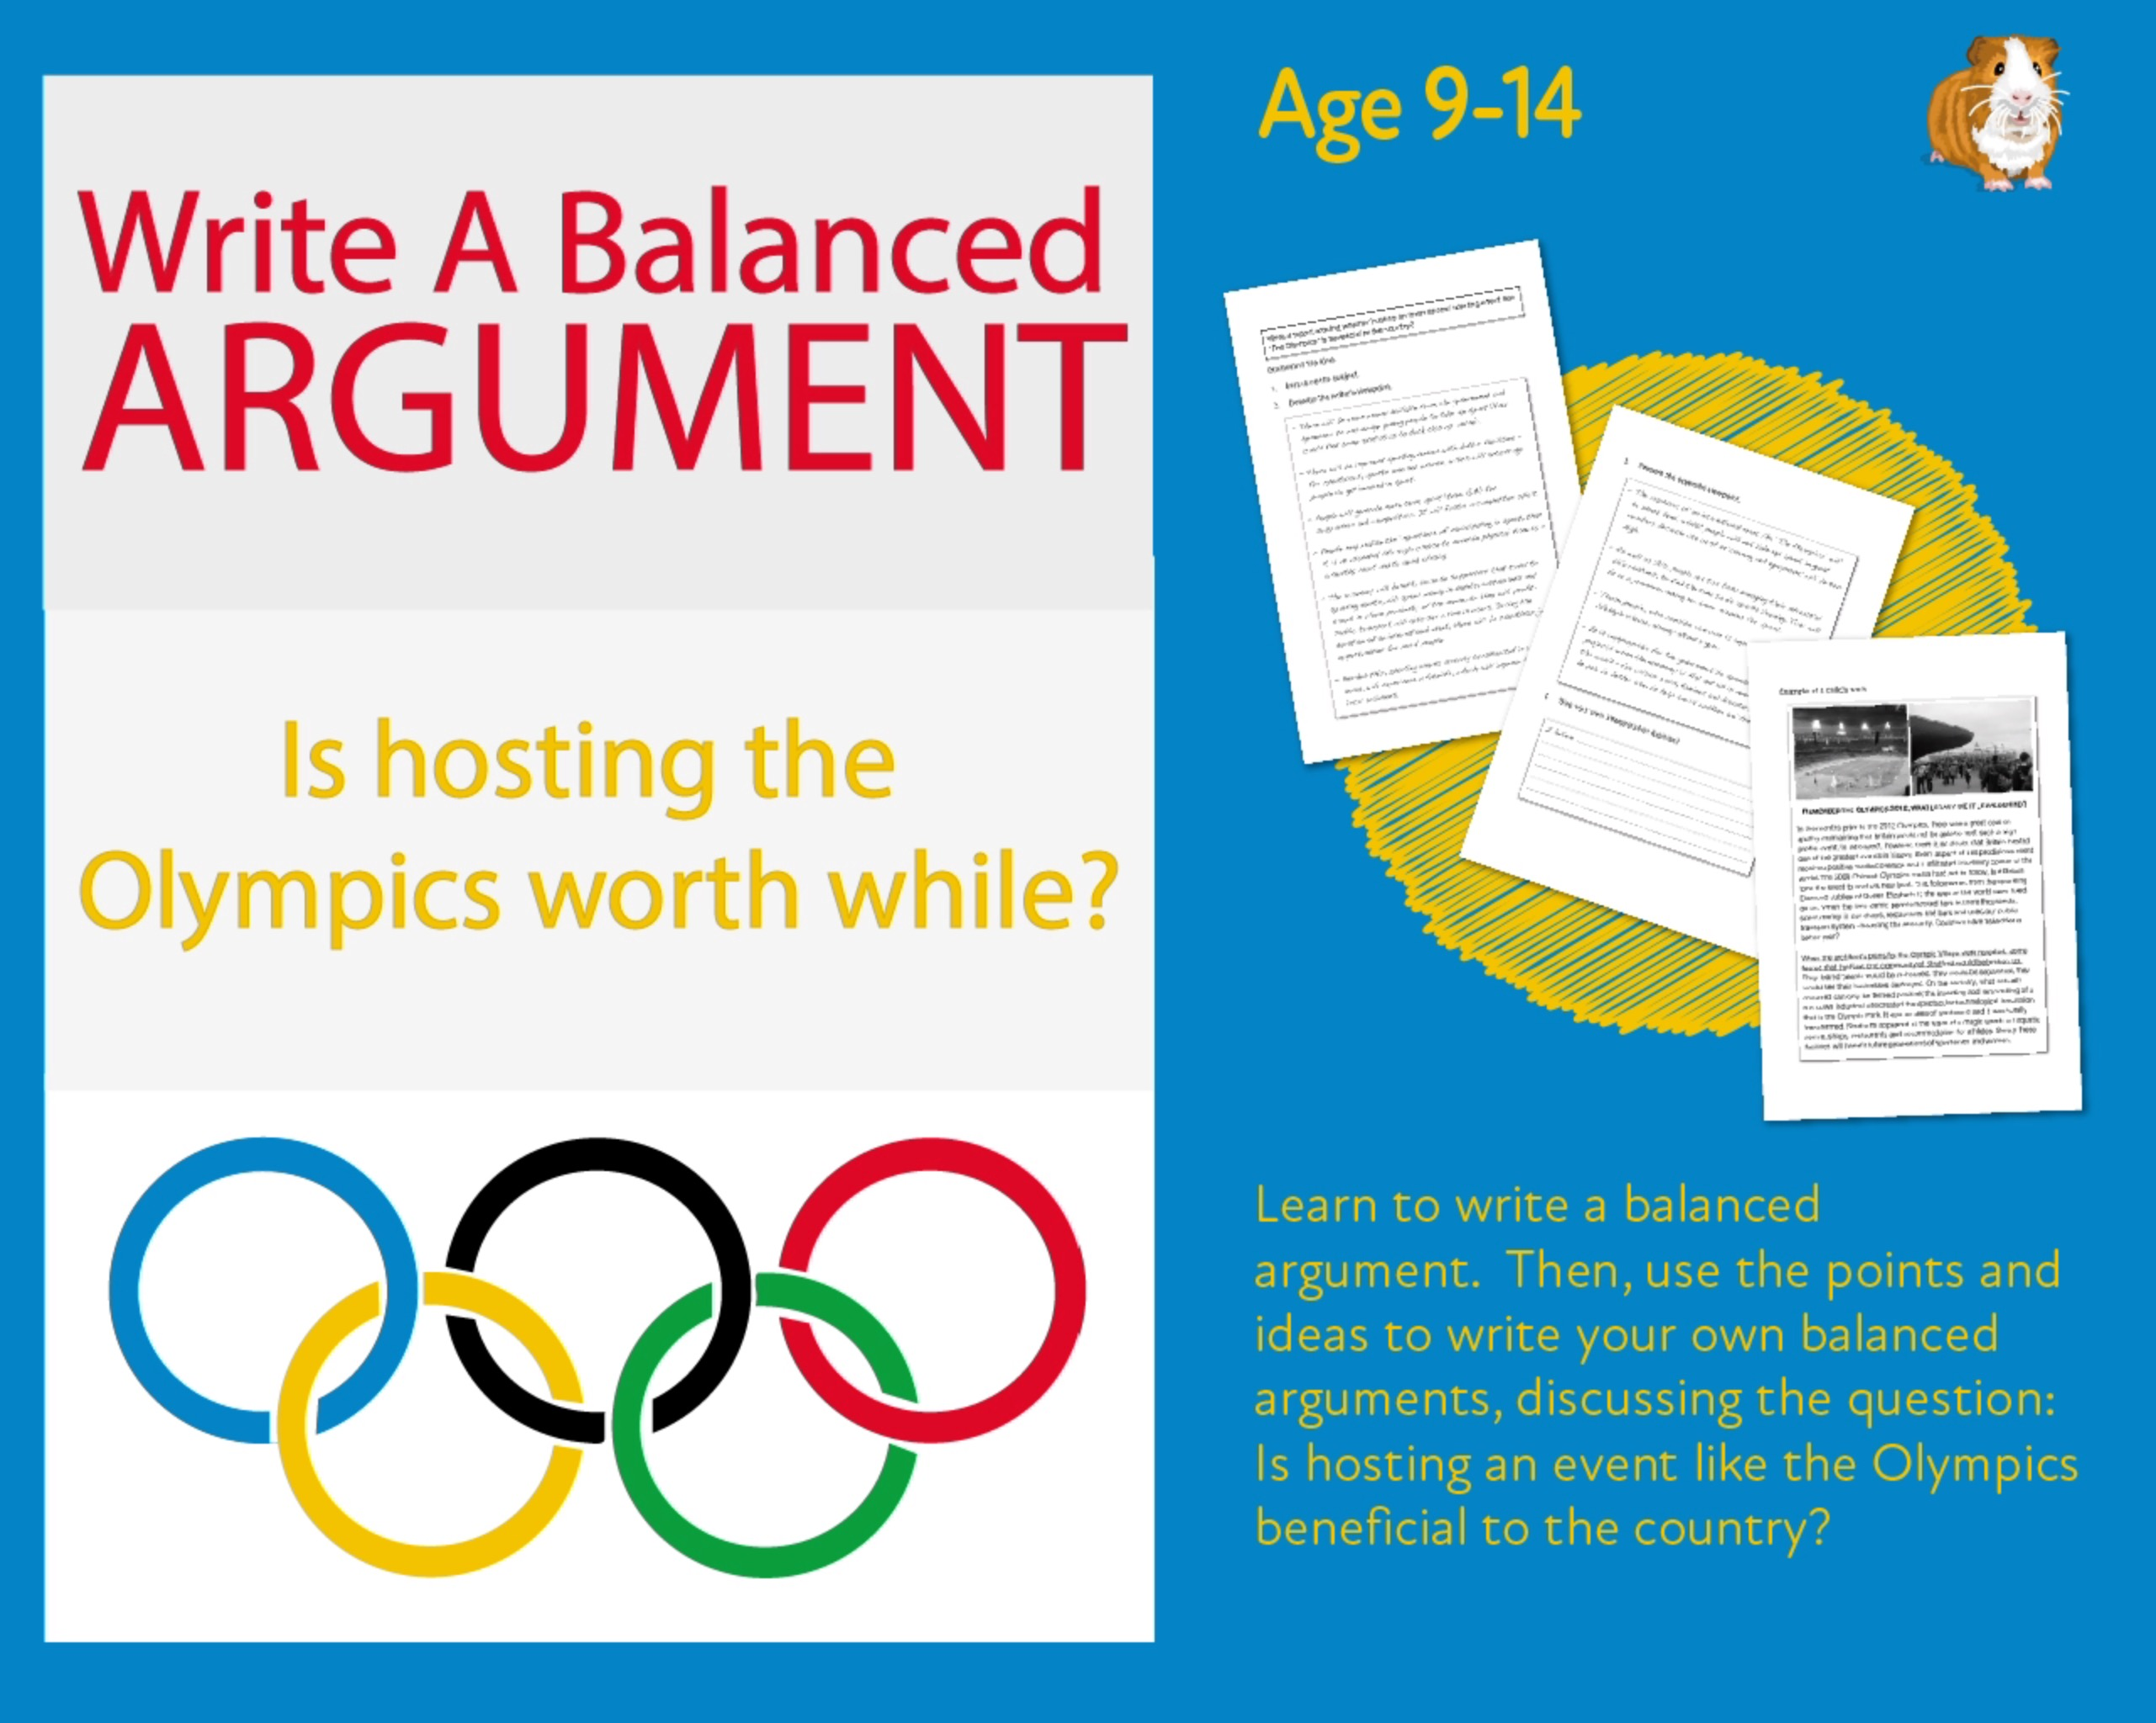 Practise Writing A Balanced Argument: Is Hosting 'The Olympics' Beneficial To A Country (9-14 years)